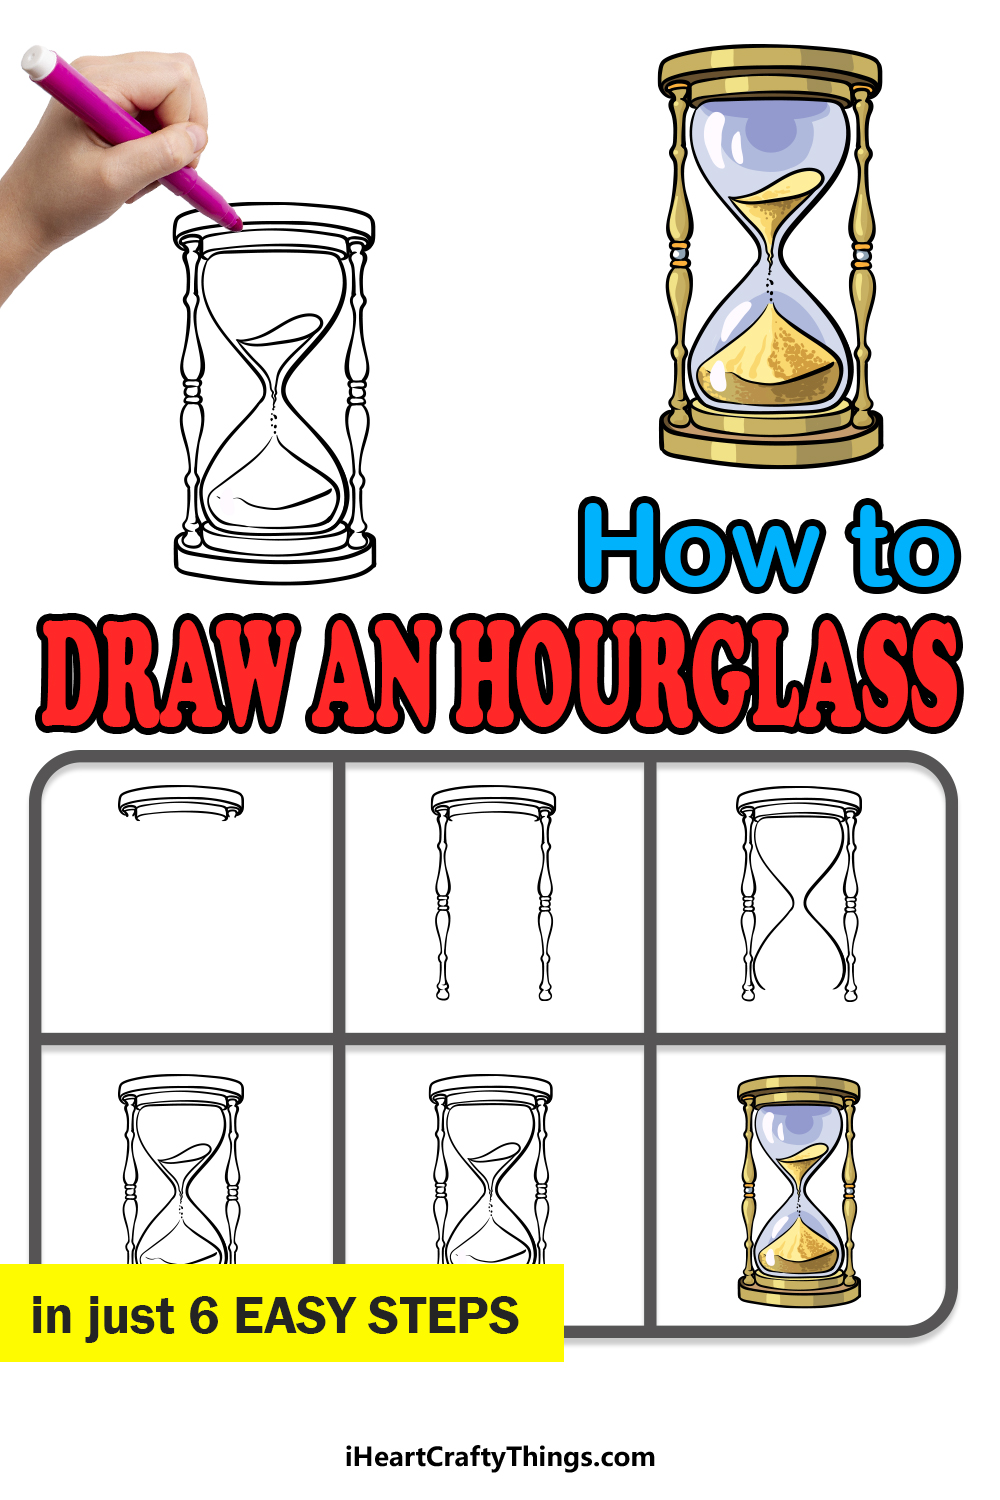 how to draw an hourglass in 6 easy steps